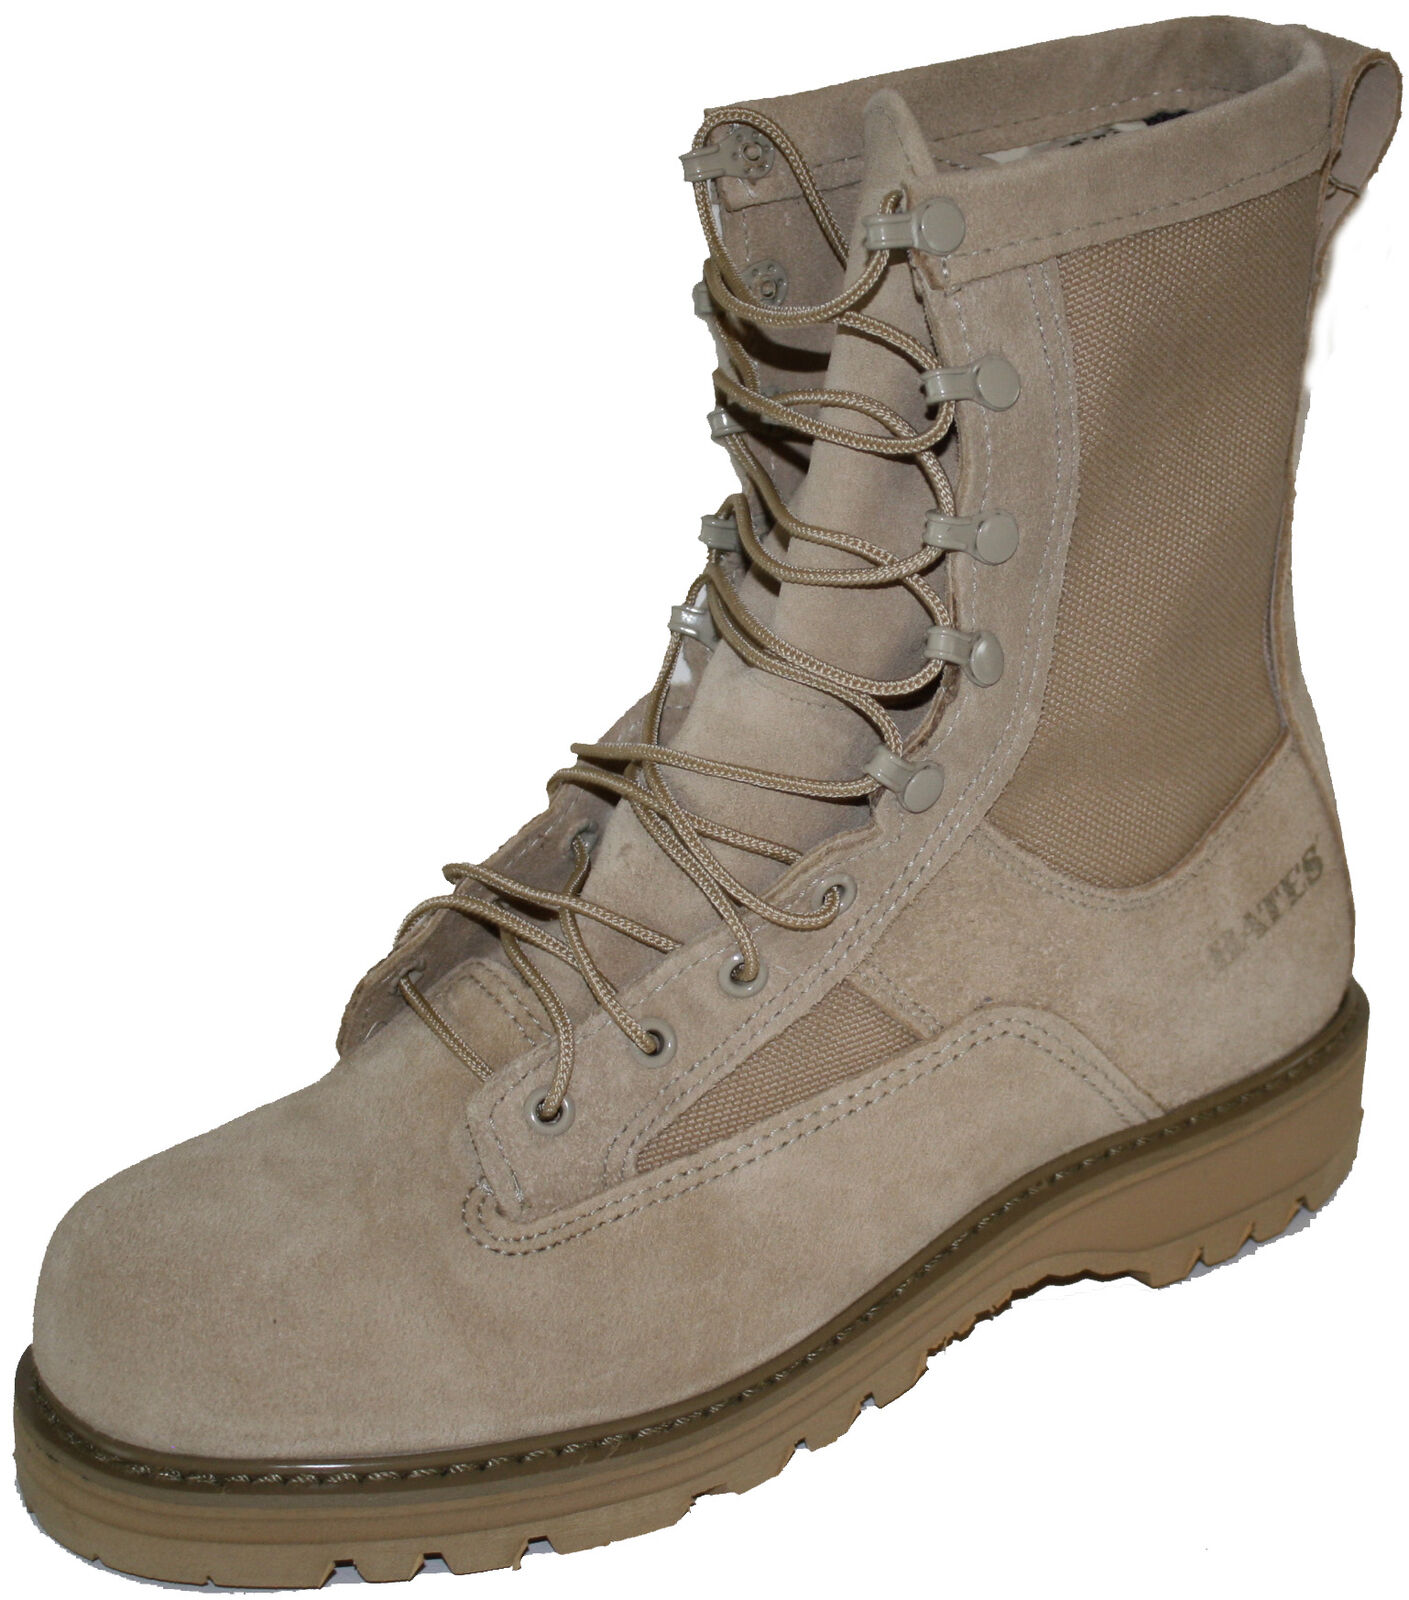 Bates 30500 Mens Gore-Tex Waterproof ICB Boot FAST FREE USA SHIPPING